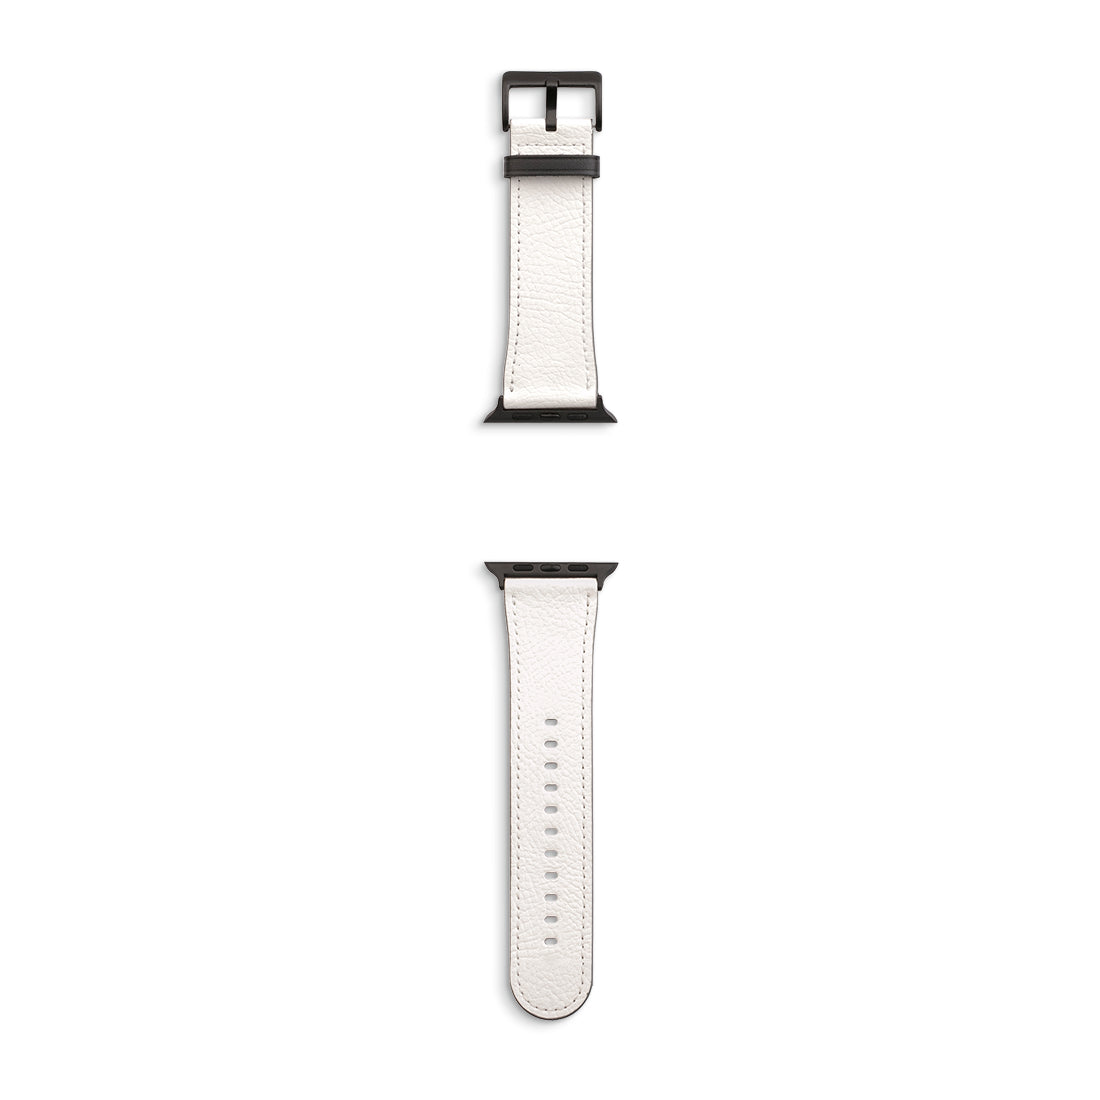 Apple Watch PU Leather Band with Black Buckles/Lugs